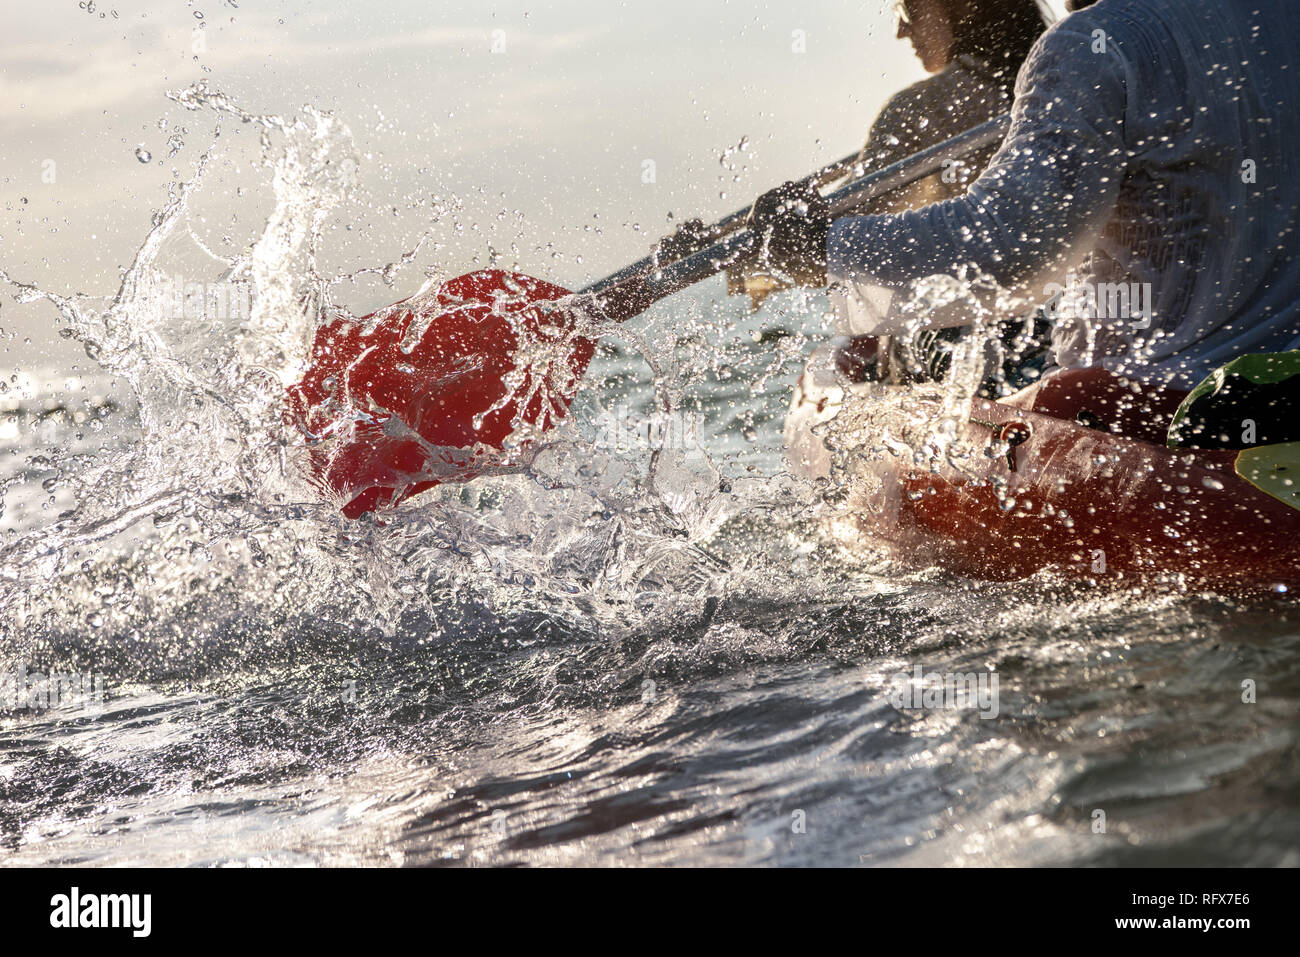 Closeup photo of splashes from kayak or canoe paddle at sea bay. Kayaking or canoeing concept Stock Photo